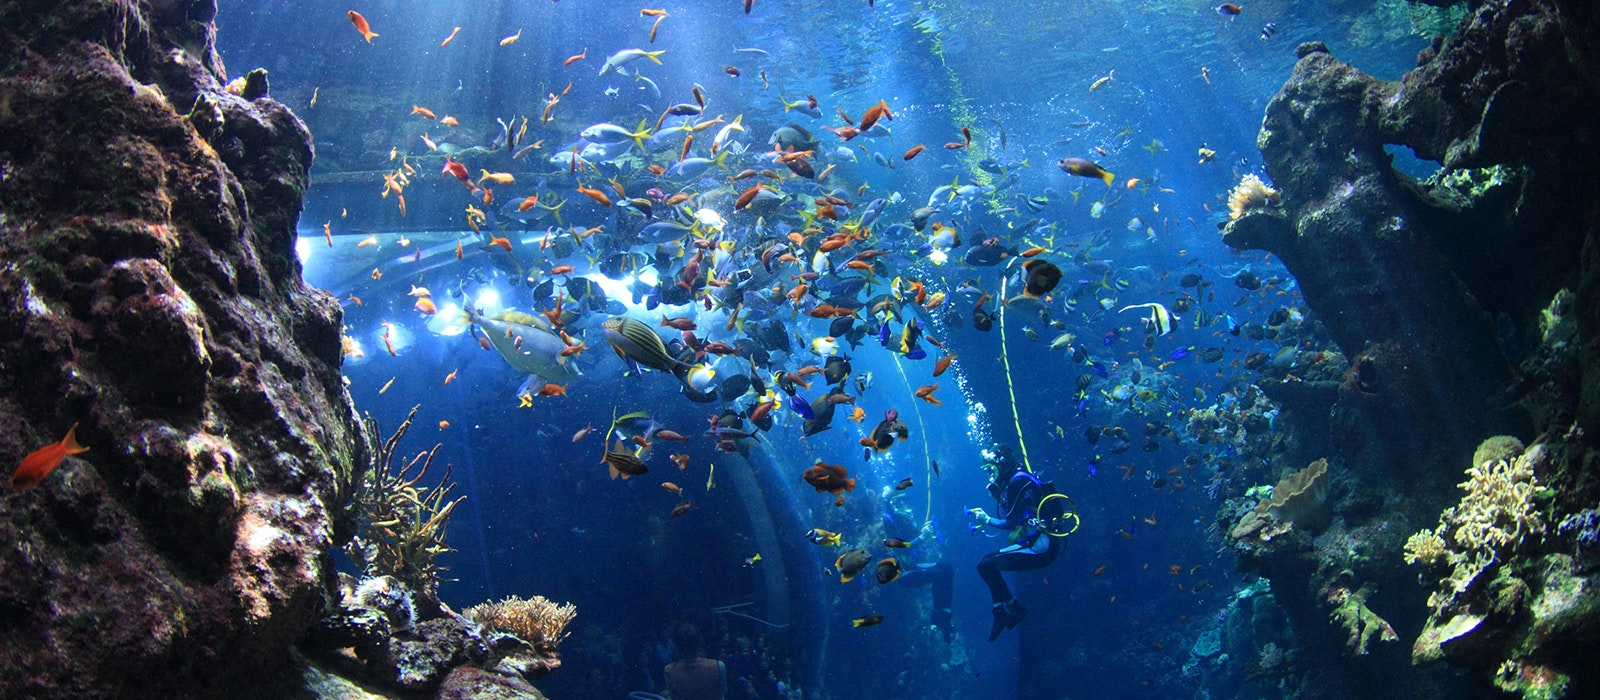 You can see the world's largest living indoor coral reef in Golden Gate Park.